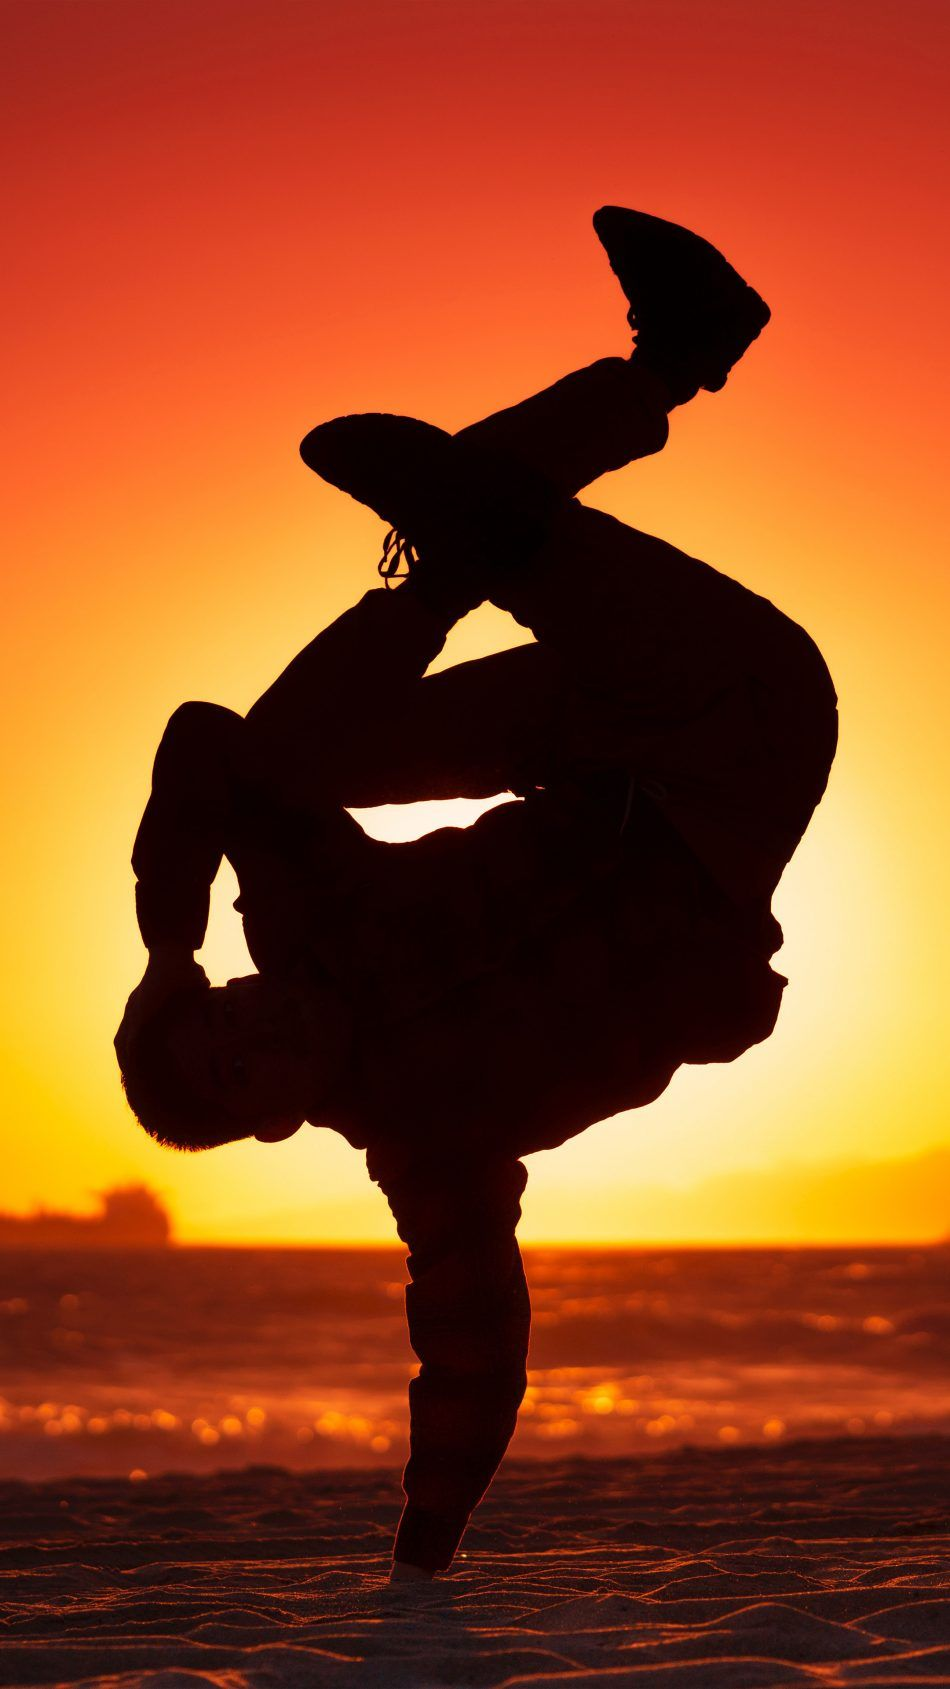 Boy Dance Beach Sunset Sunlight 4k Ultra Hd Mobile Wallpaper In 2020 Background Images Wallpapers Mobile Wallpaper Mobile Legend Wallpaper